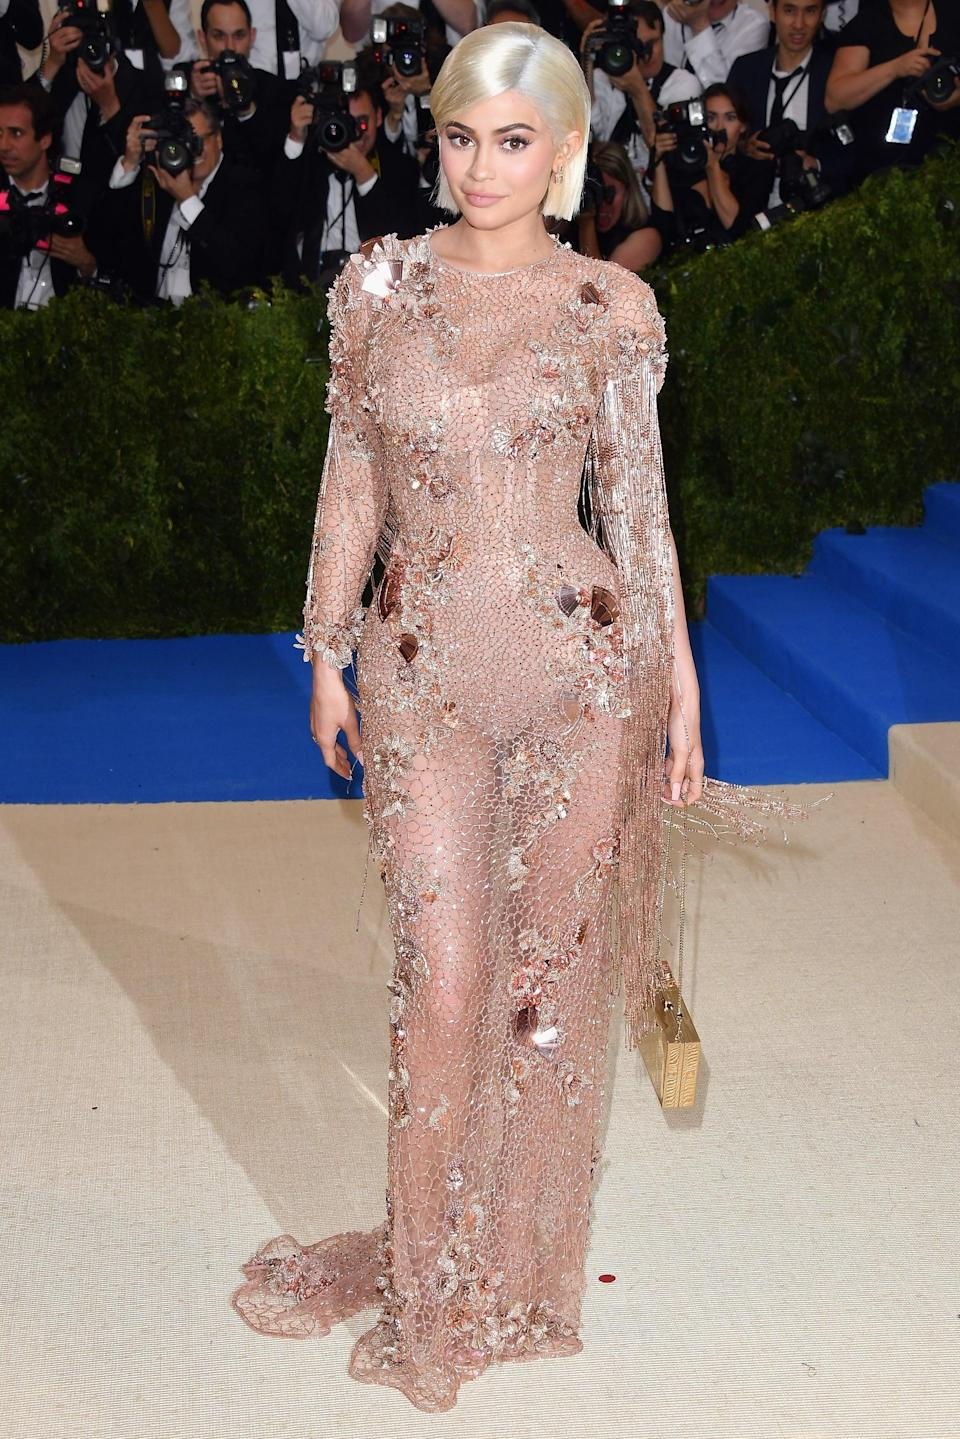 """<p>On the other hand, Kylie took a sexier approach in 2017. Just look at her <a href=""""https://www.popsugar.com/fashion/Kylie-Jenner-Versace-Dress-2017-Met-Gala-43489637"""" class=""""link rapid-noclick-resp"""" rel=""""nofollow noopener"""" target=""""_blank"""" data-ylk=""""slk:custom Versace Met Gala"""">custom Versace Met Gala</a> look!</p>"""